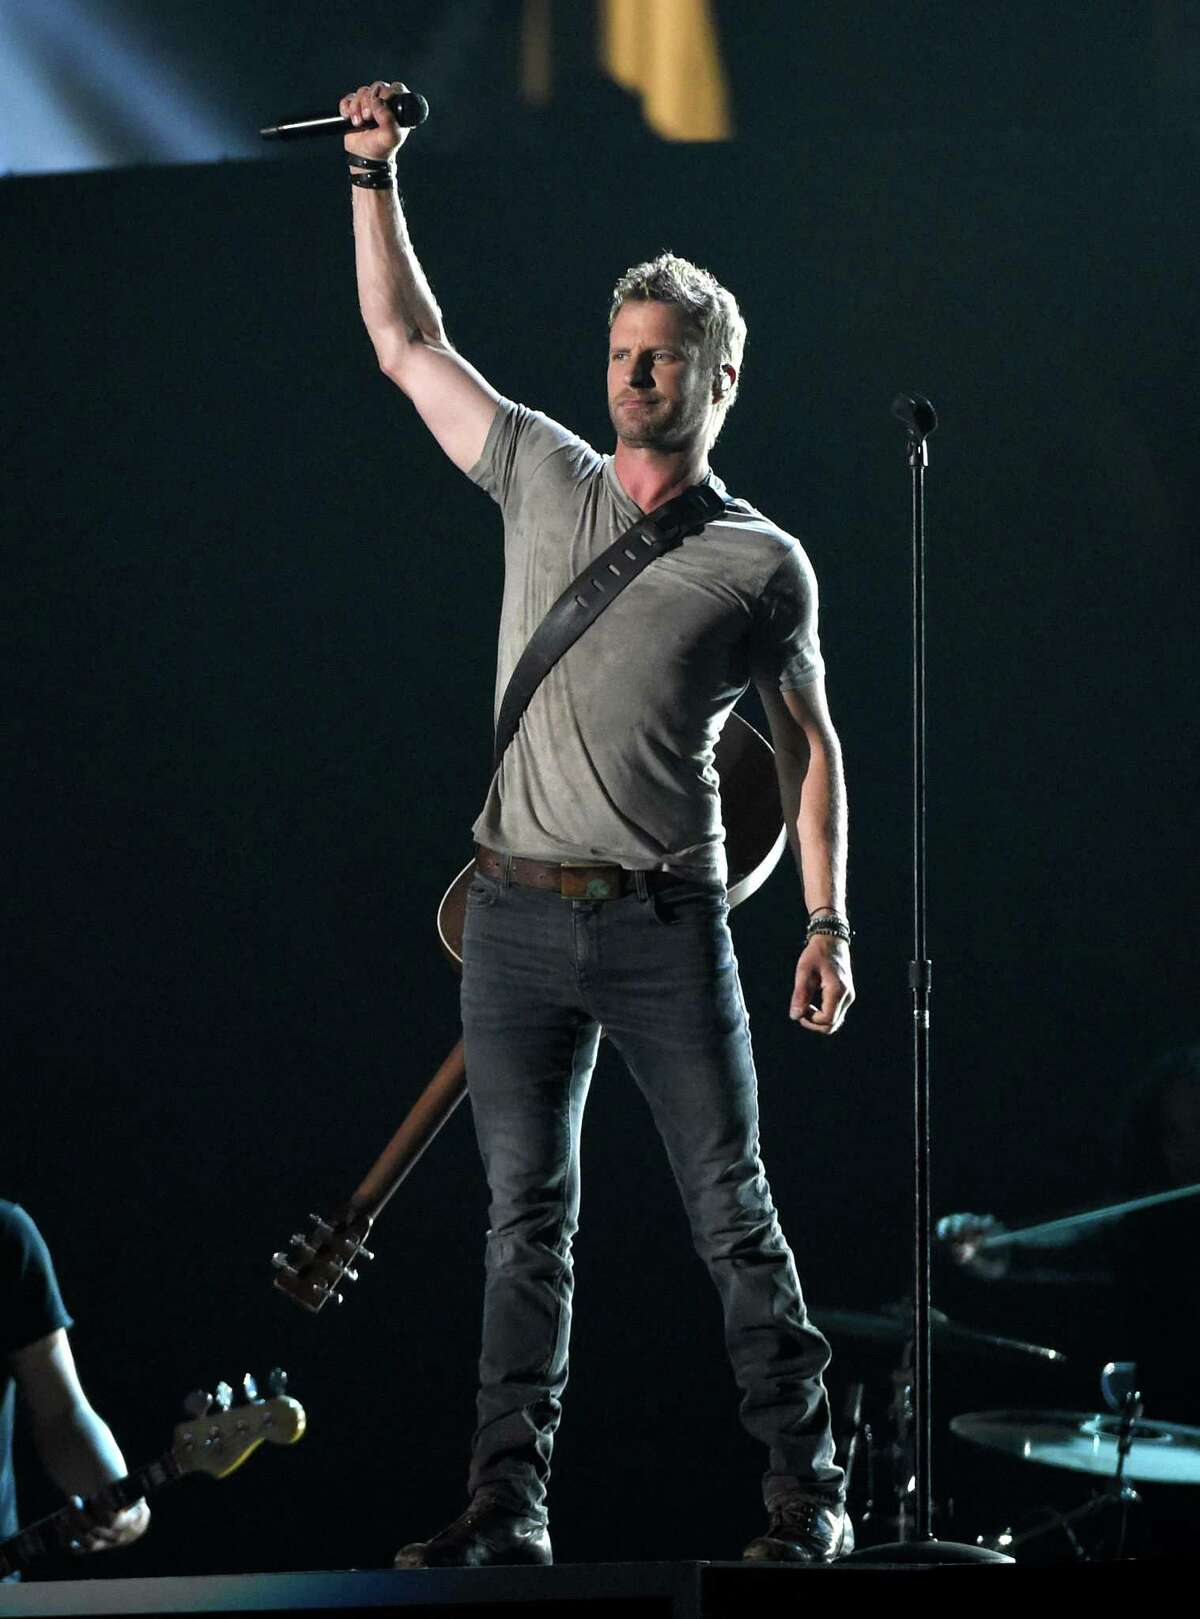 Dierks Bentley performs at the 50th annual Academy of Country Music Awards at AT&T Stadium on Sunday, April 19, 2015, in Arlington, Texas. (Photo by Chris Pizzello/Invision/AP) ORG XMIT: TXBR212